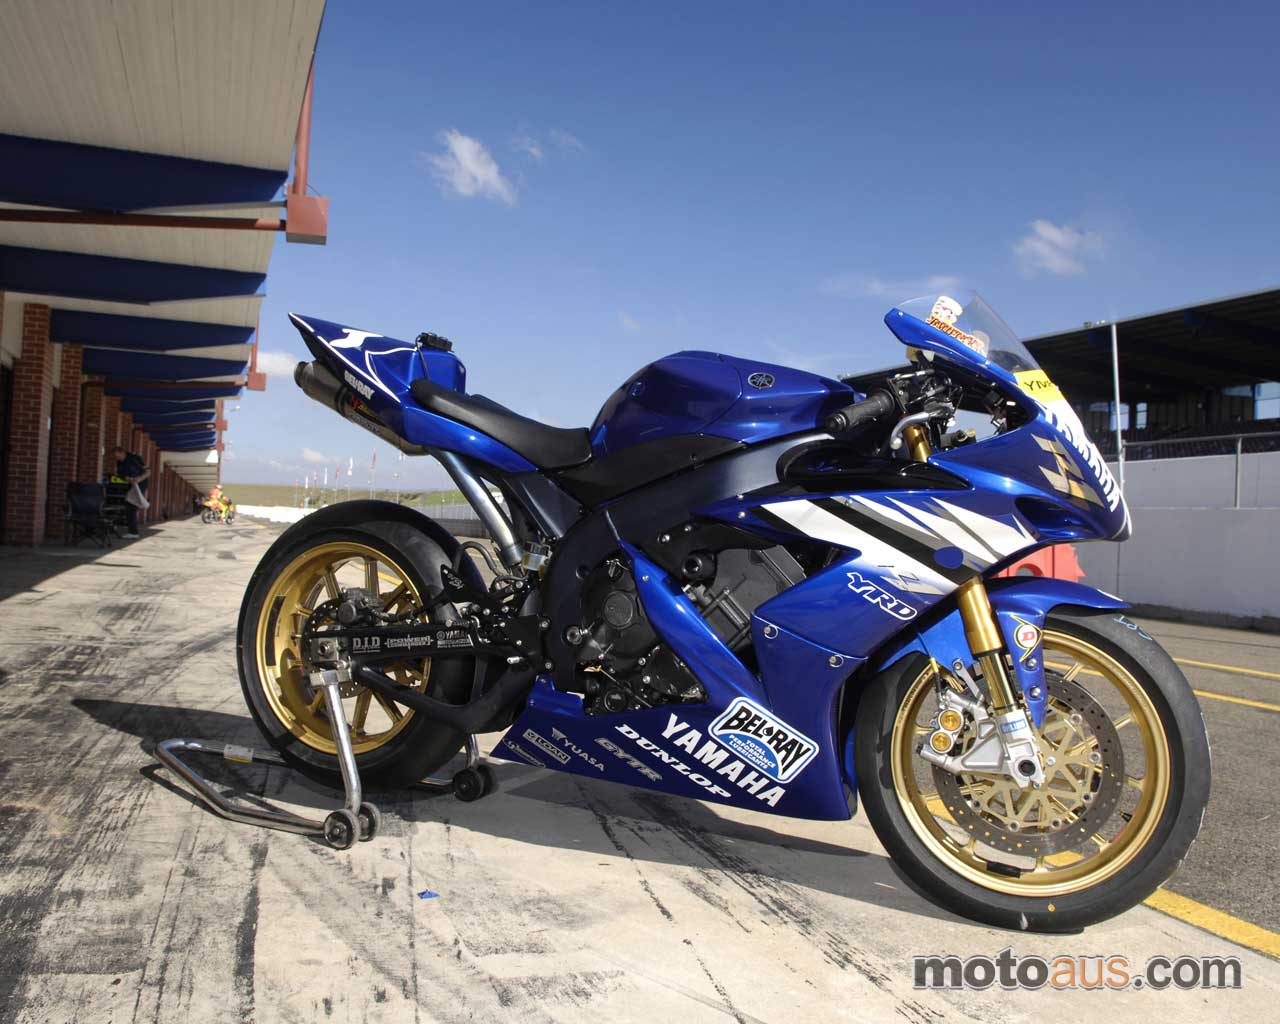 Yamaha R1 Wallpaper 7289 Hd Wallpapers in Bikes   Imagescicom 1280x1024